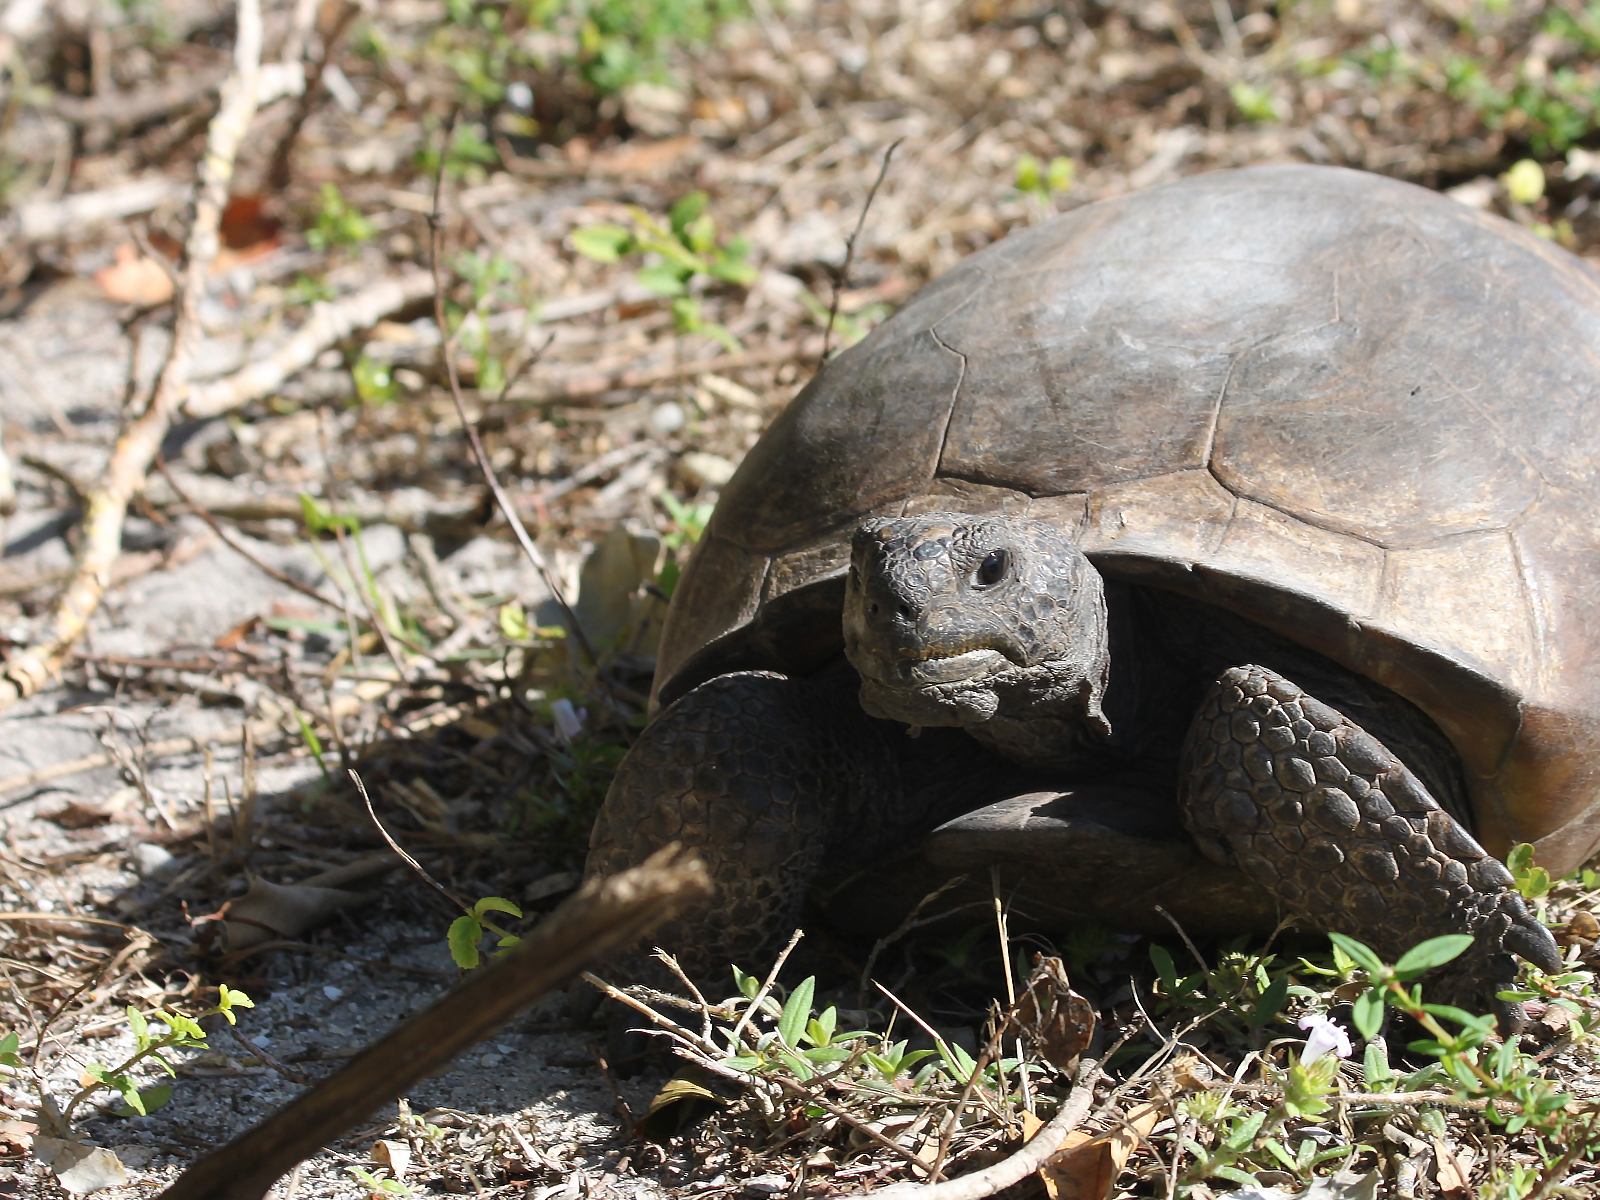 Close up of a gopher tortoise in J.N. Ding Darling National Wildlife Refuge, Sanibel Island, FL